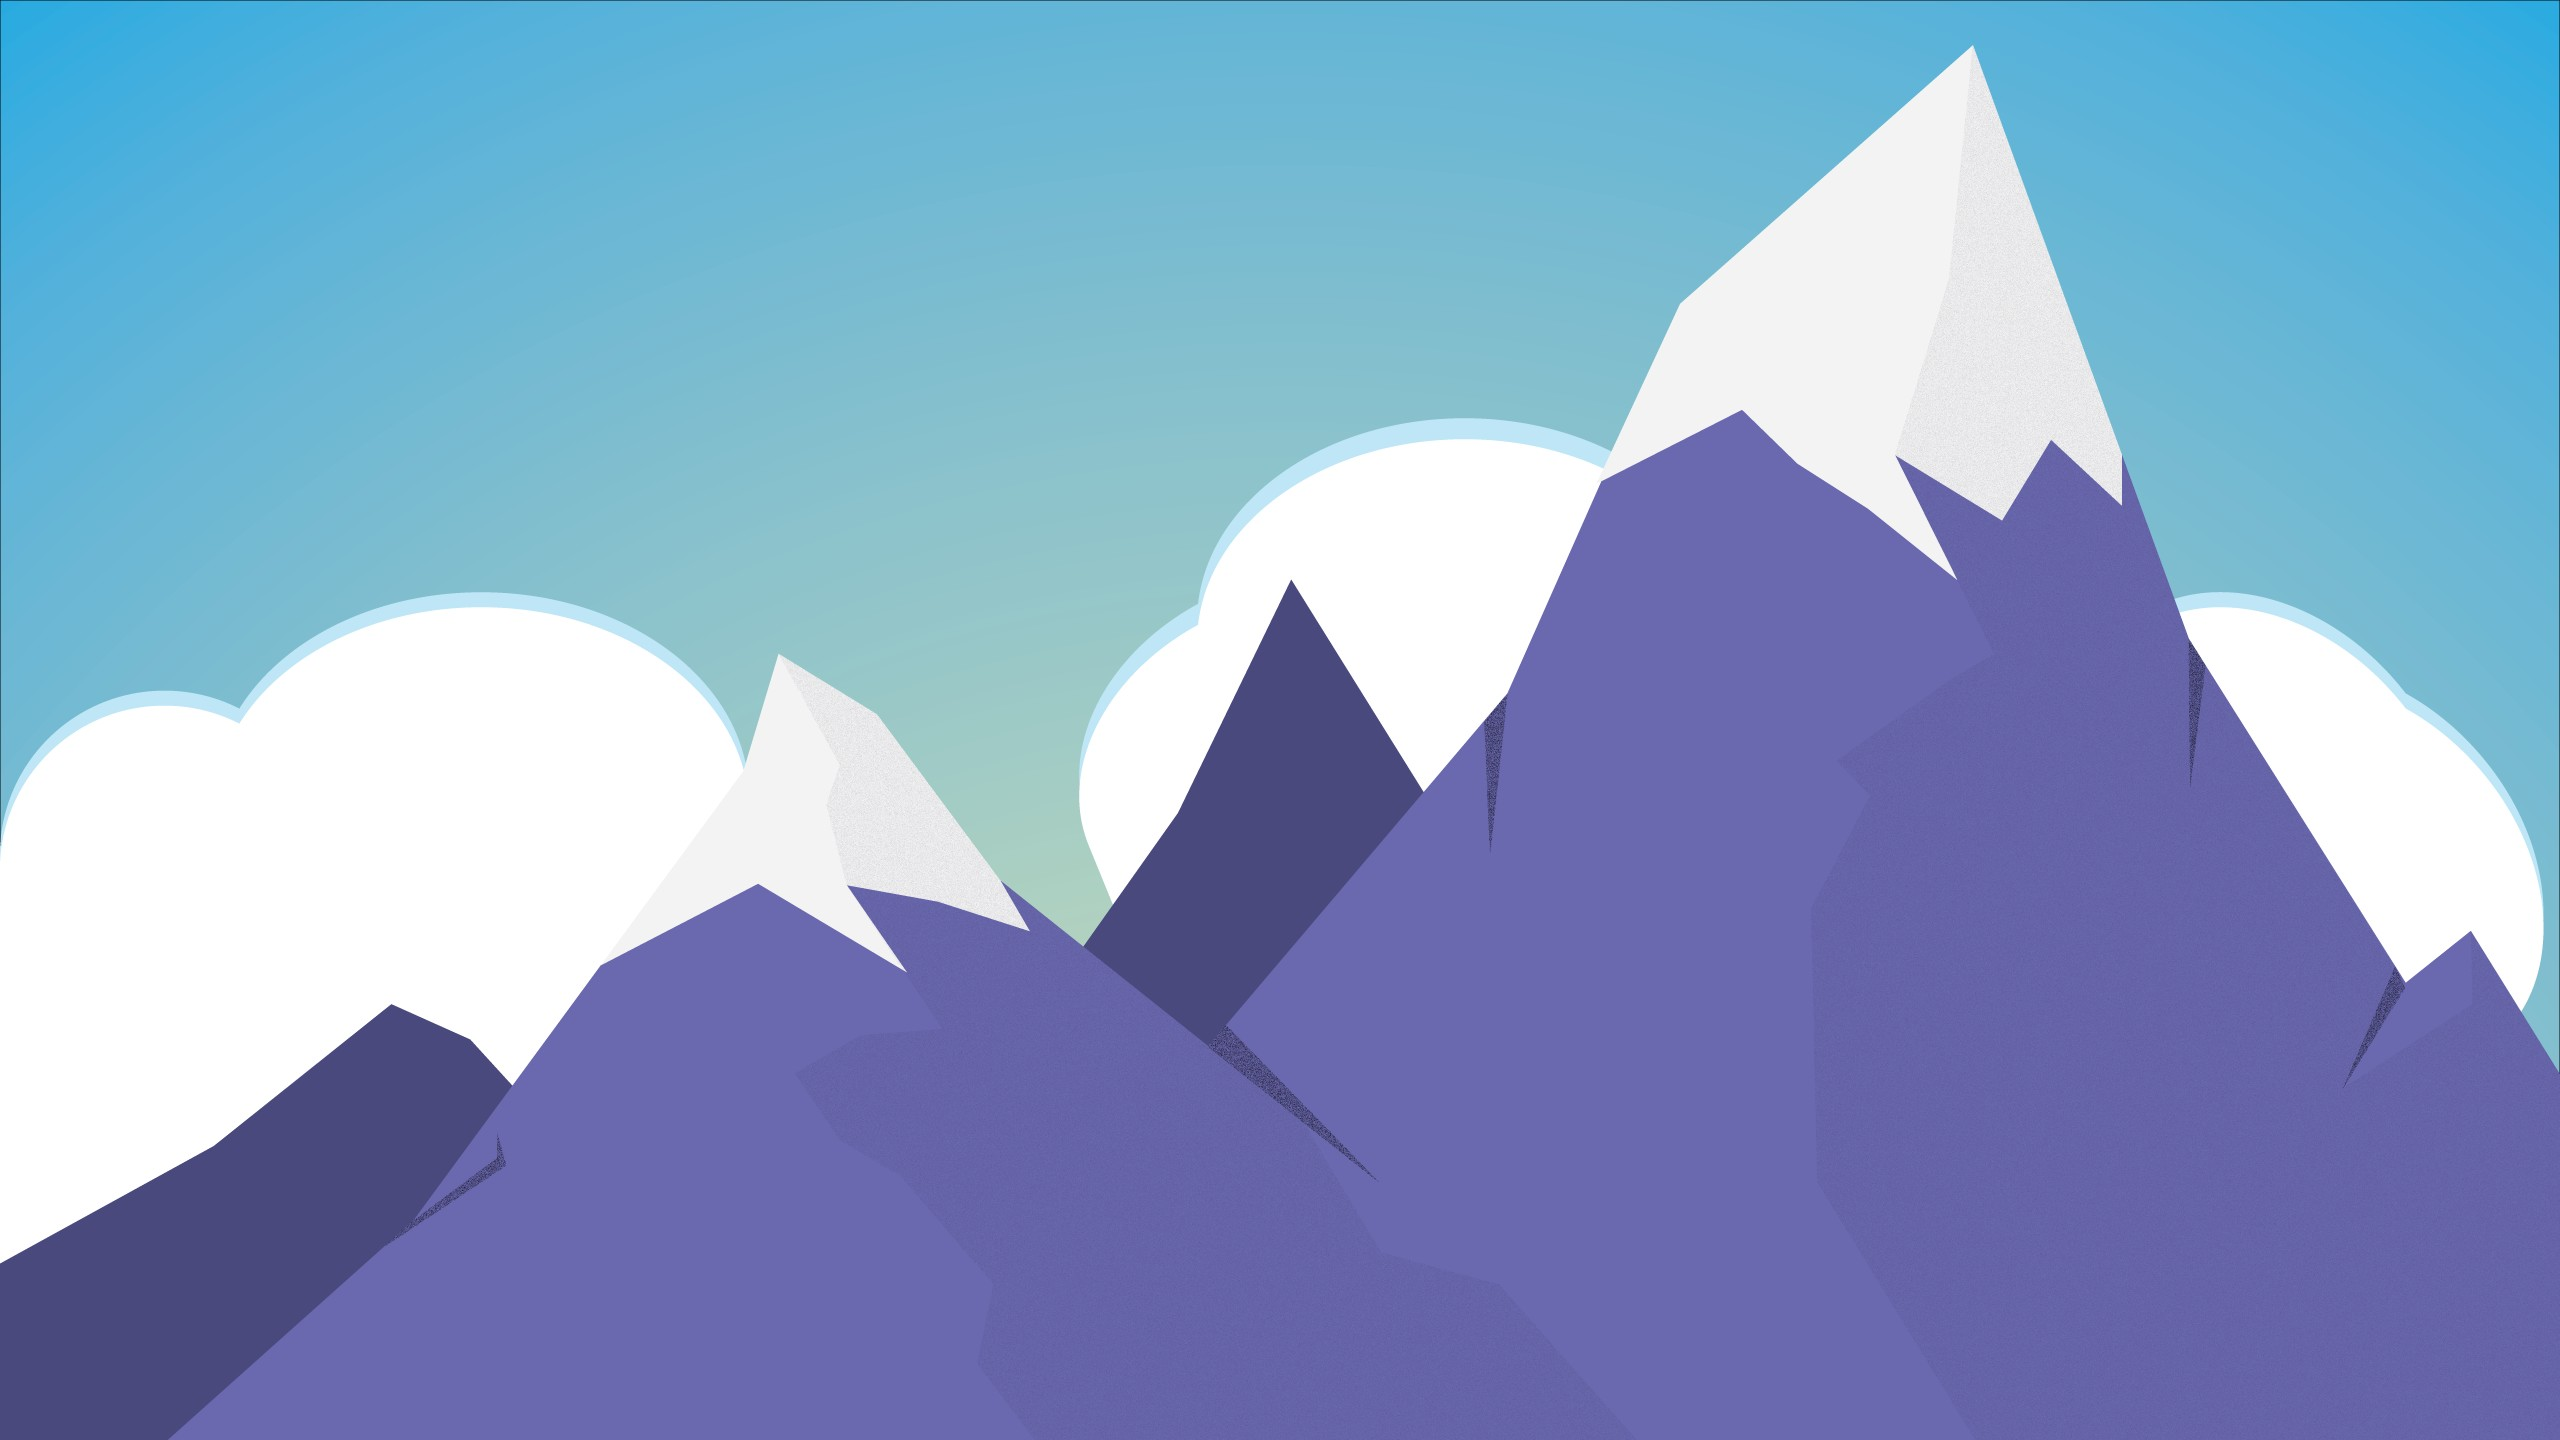 clipart mountains-clipart mountains-8